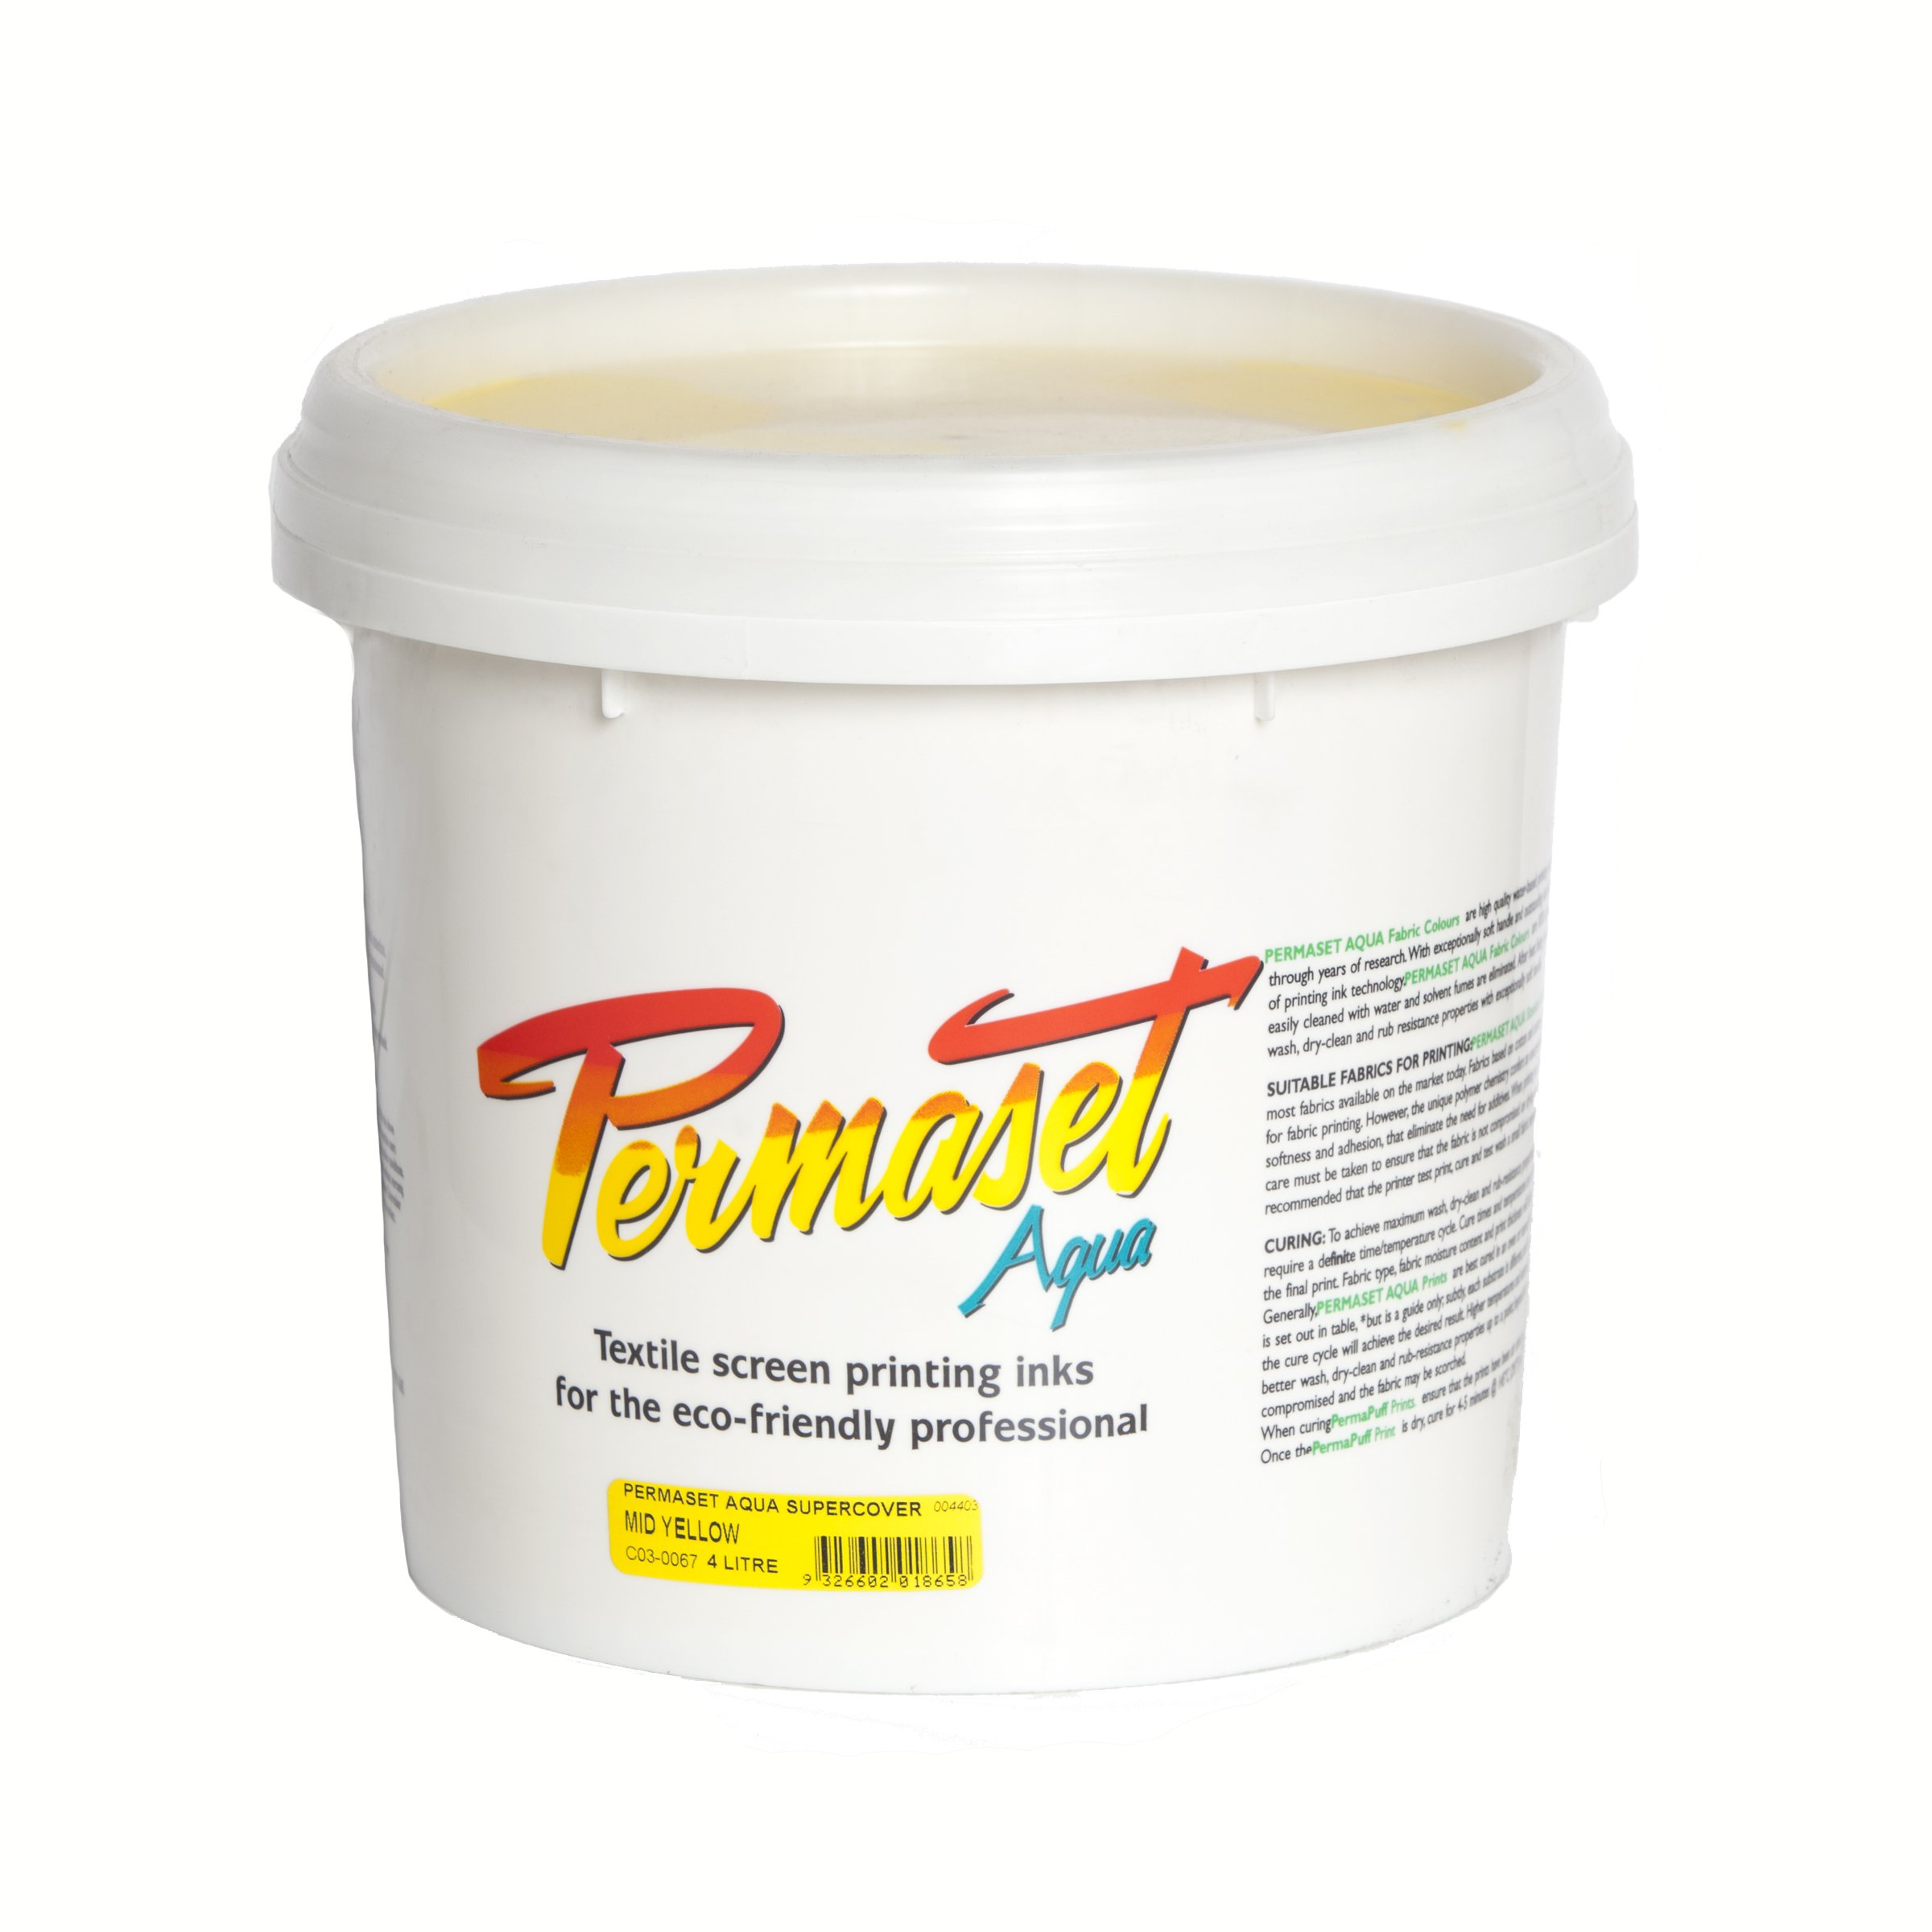 Permaset Aqua Supercover 4 Litre Fabric Printing Ink - Mid Yellow by OfficeMarket